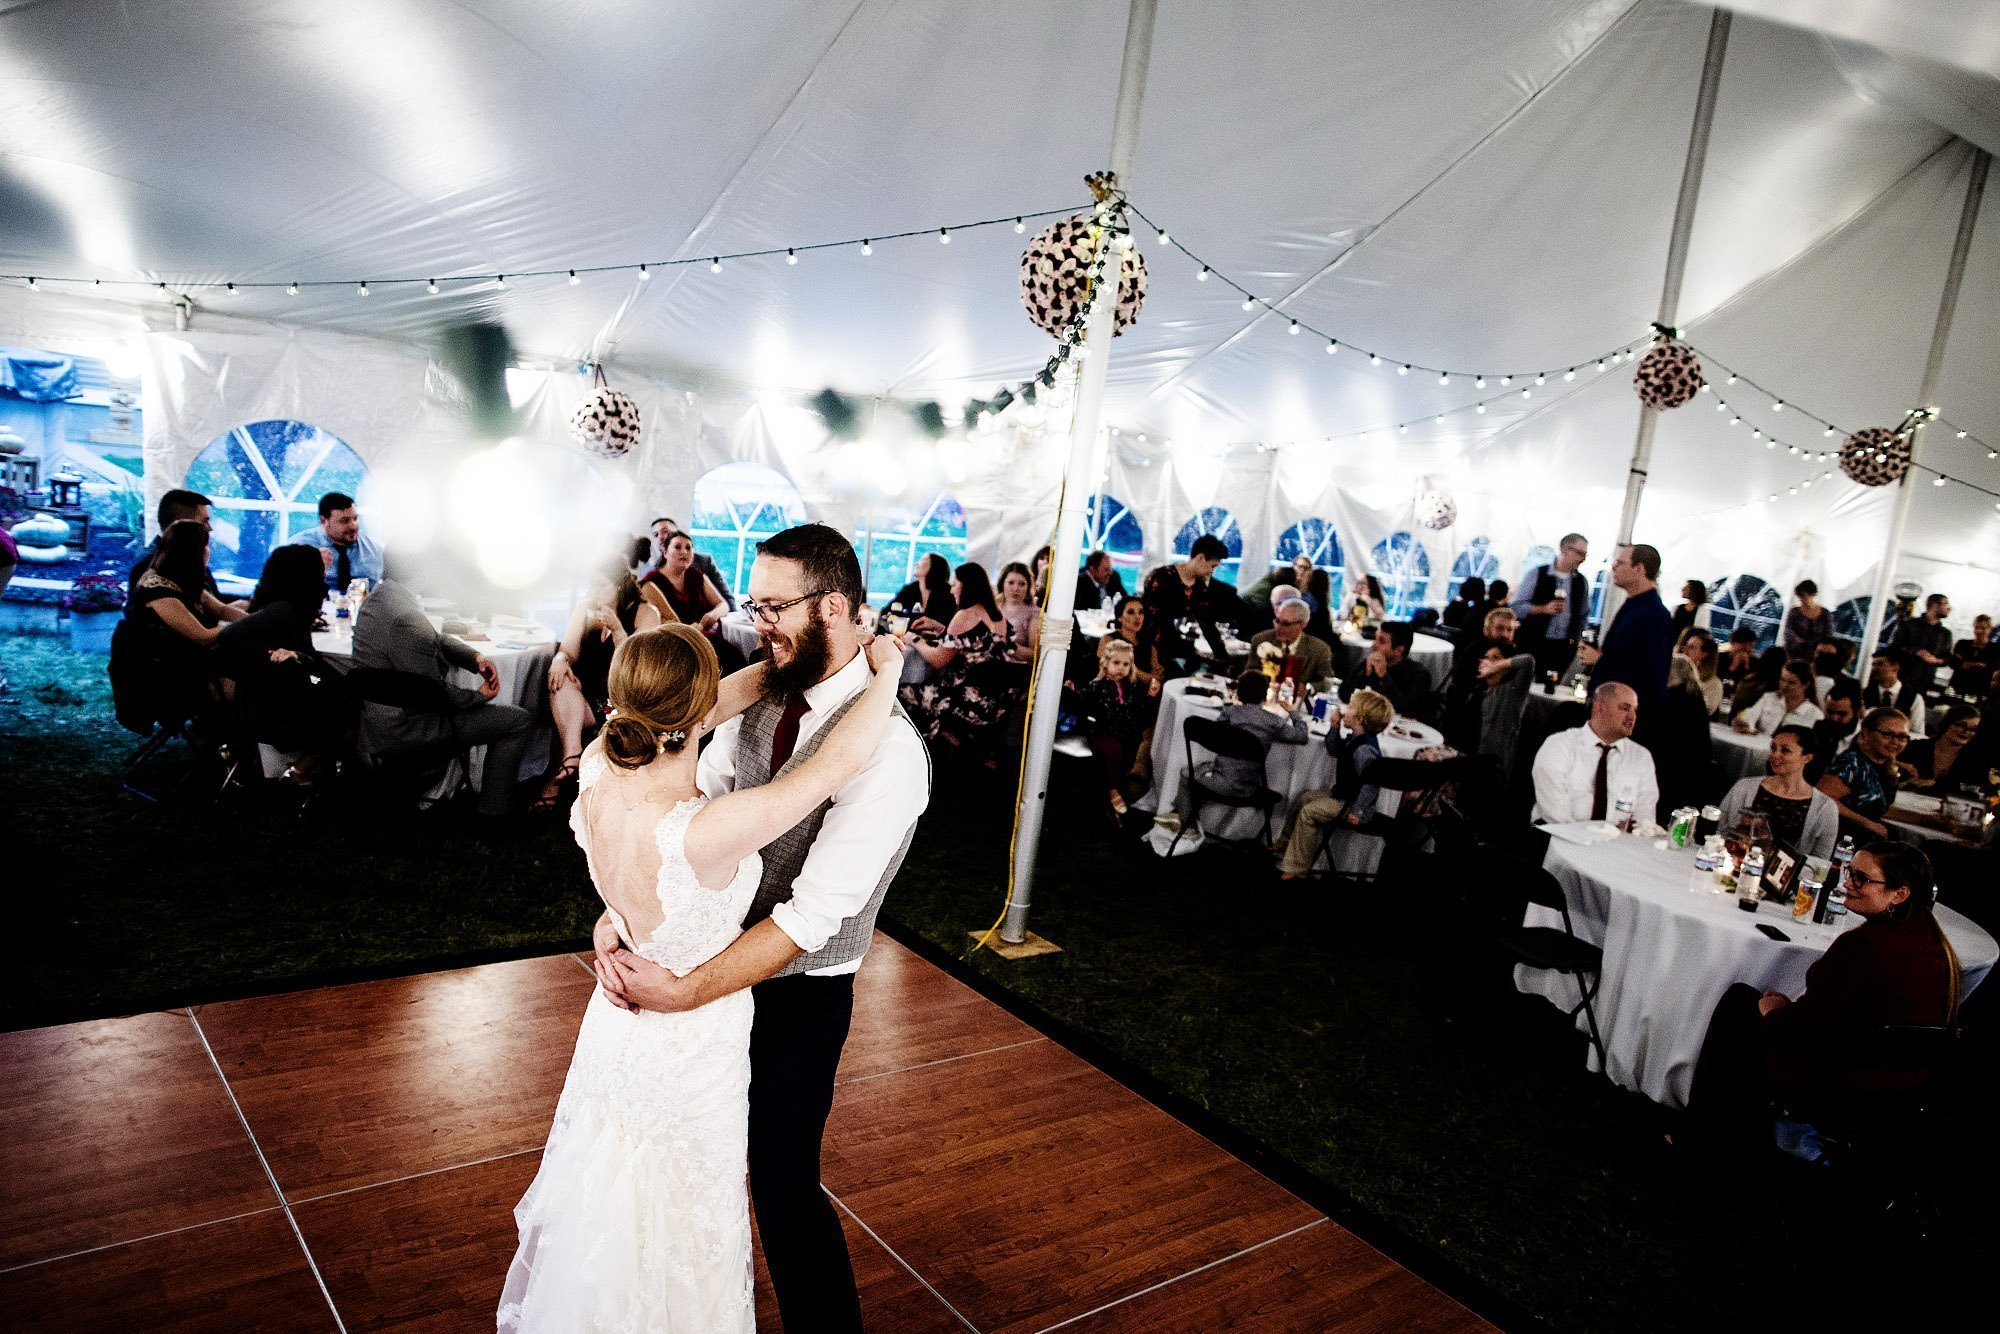 Massachusetts Backyard Wedding  I  The bride and groom share their first dance during the tented wedding reception.